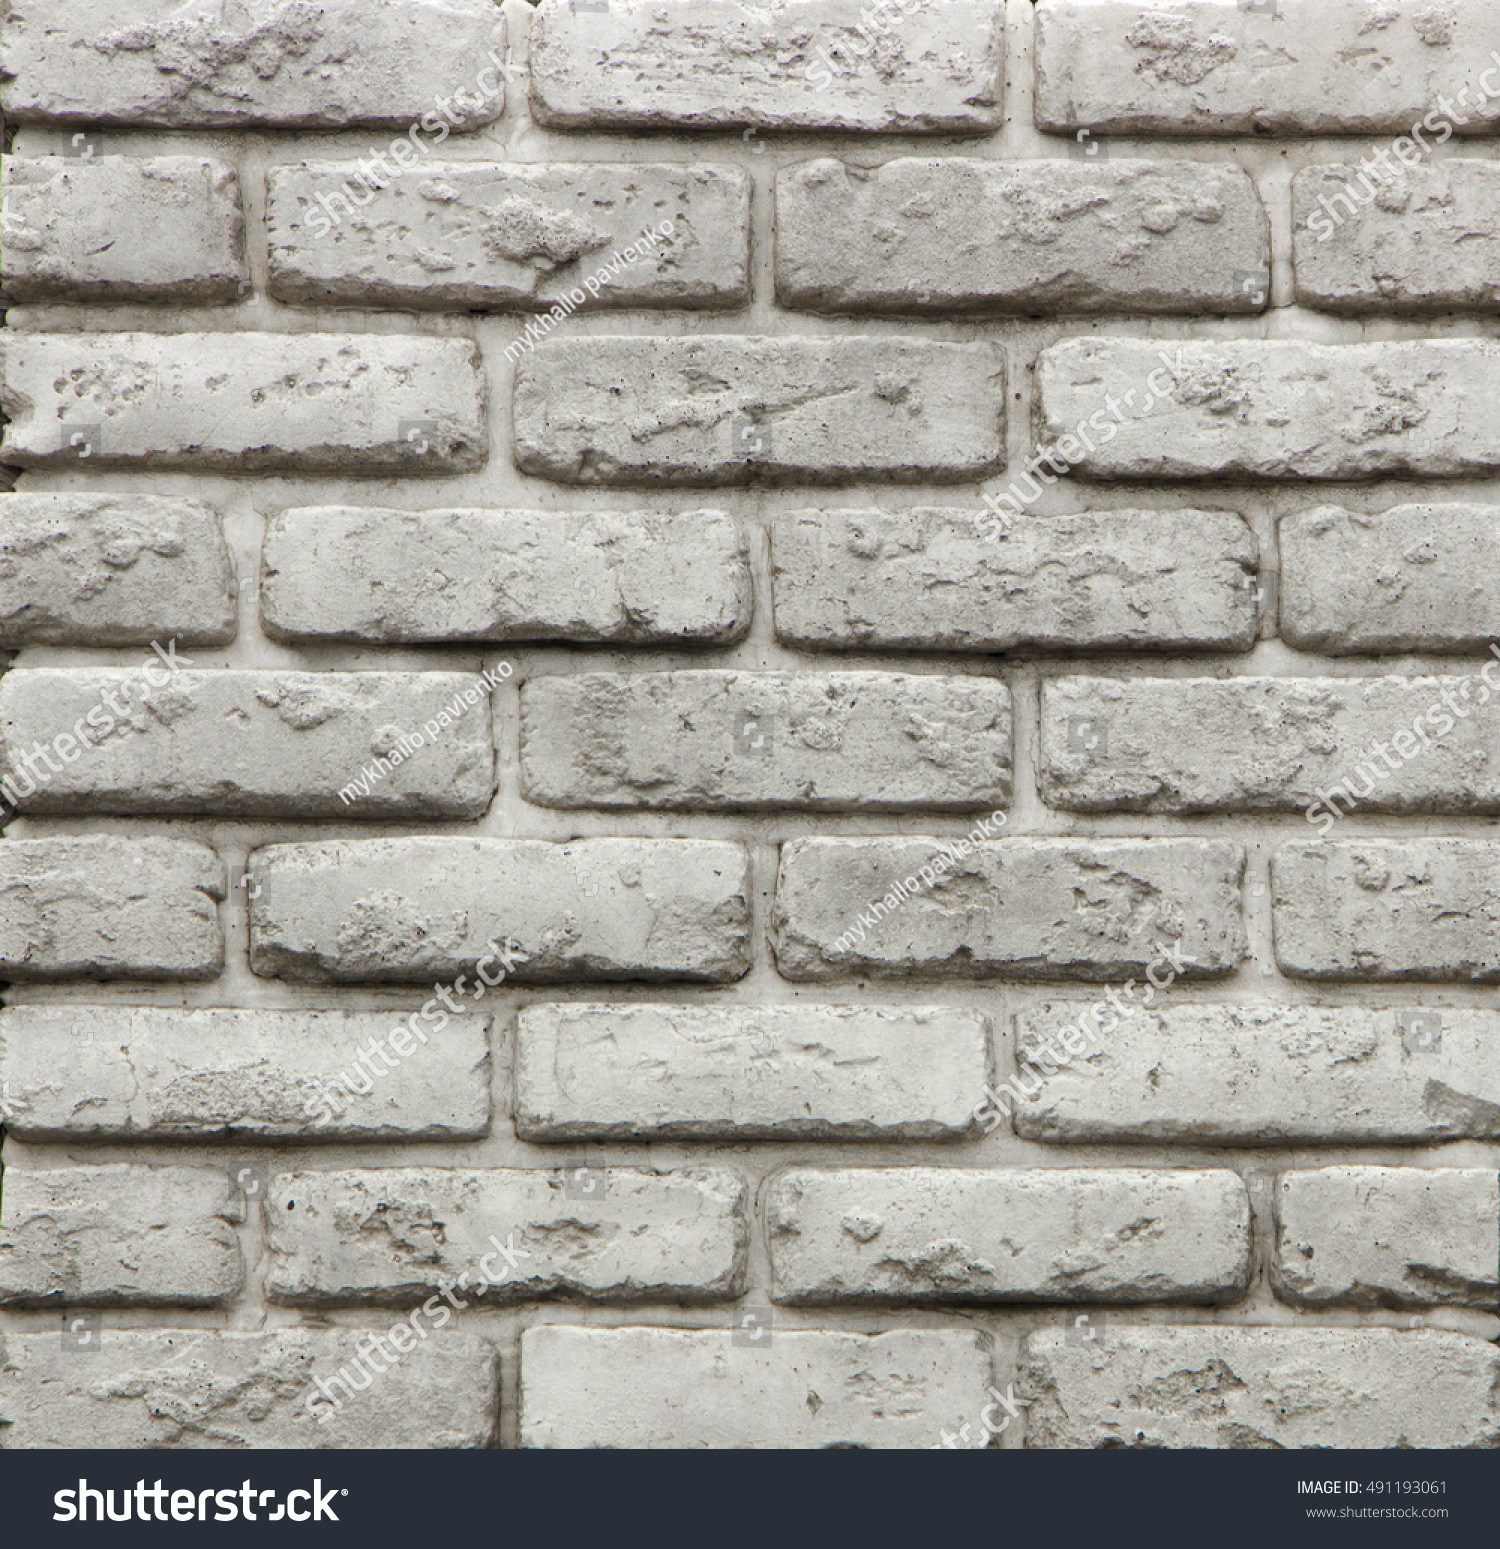 Concrete Wall Tiles Form Decorative Bricks Stock Photo (Edit